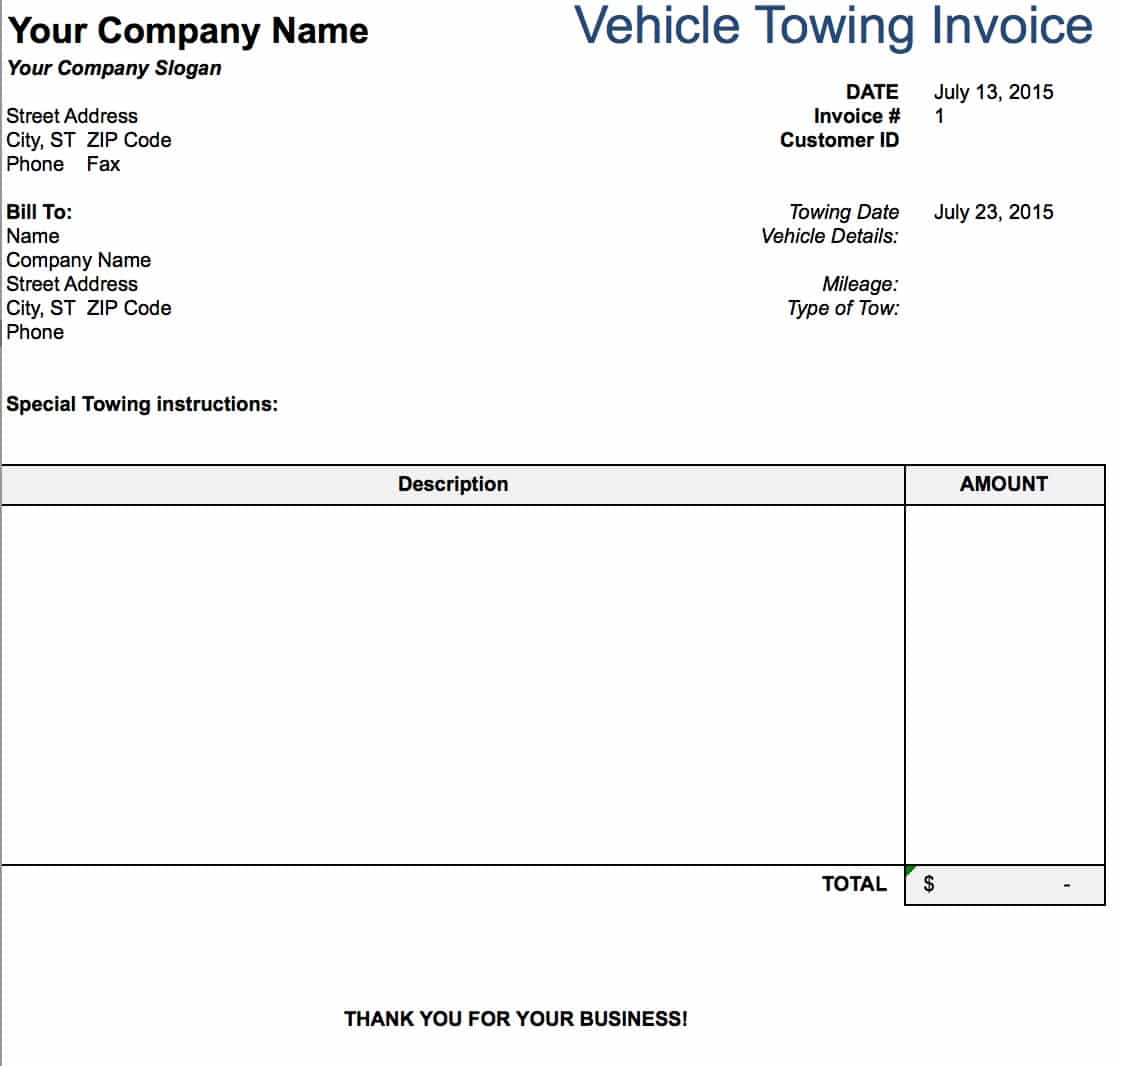 Free Tow Service Invoice Template Excel PDF Word Doc - Free printable service invoices for service business